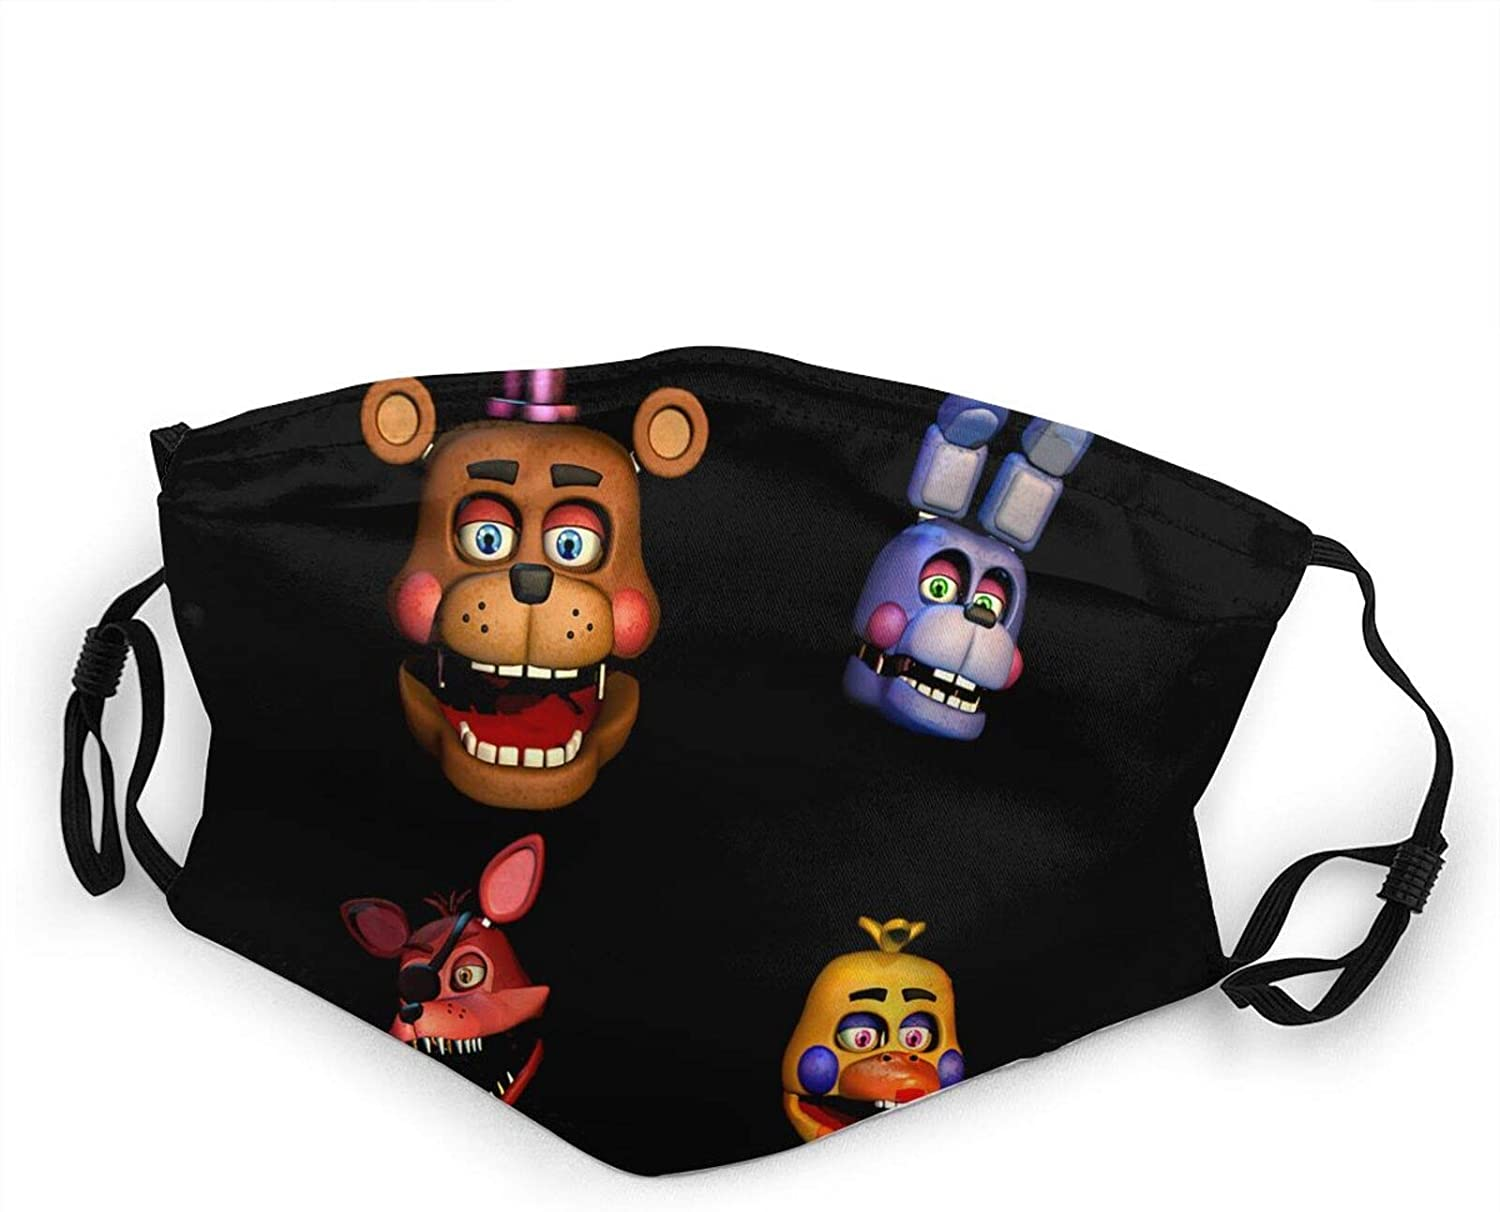 Five Nights at Freddy's Adjustable Kid's Reusable Face Mask Anti-Dust Masks Mouth Scarf Balaclava Face Protection for Outdoor 1 PCS